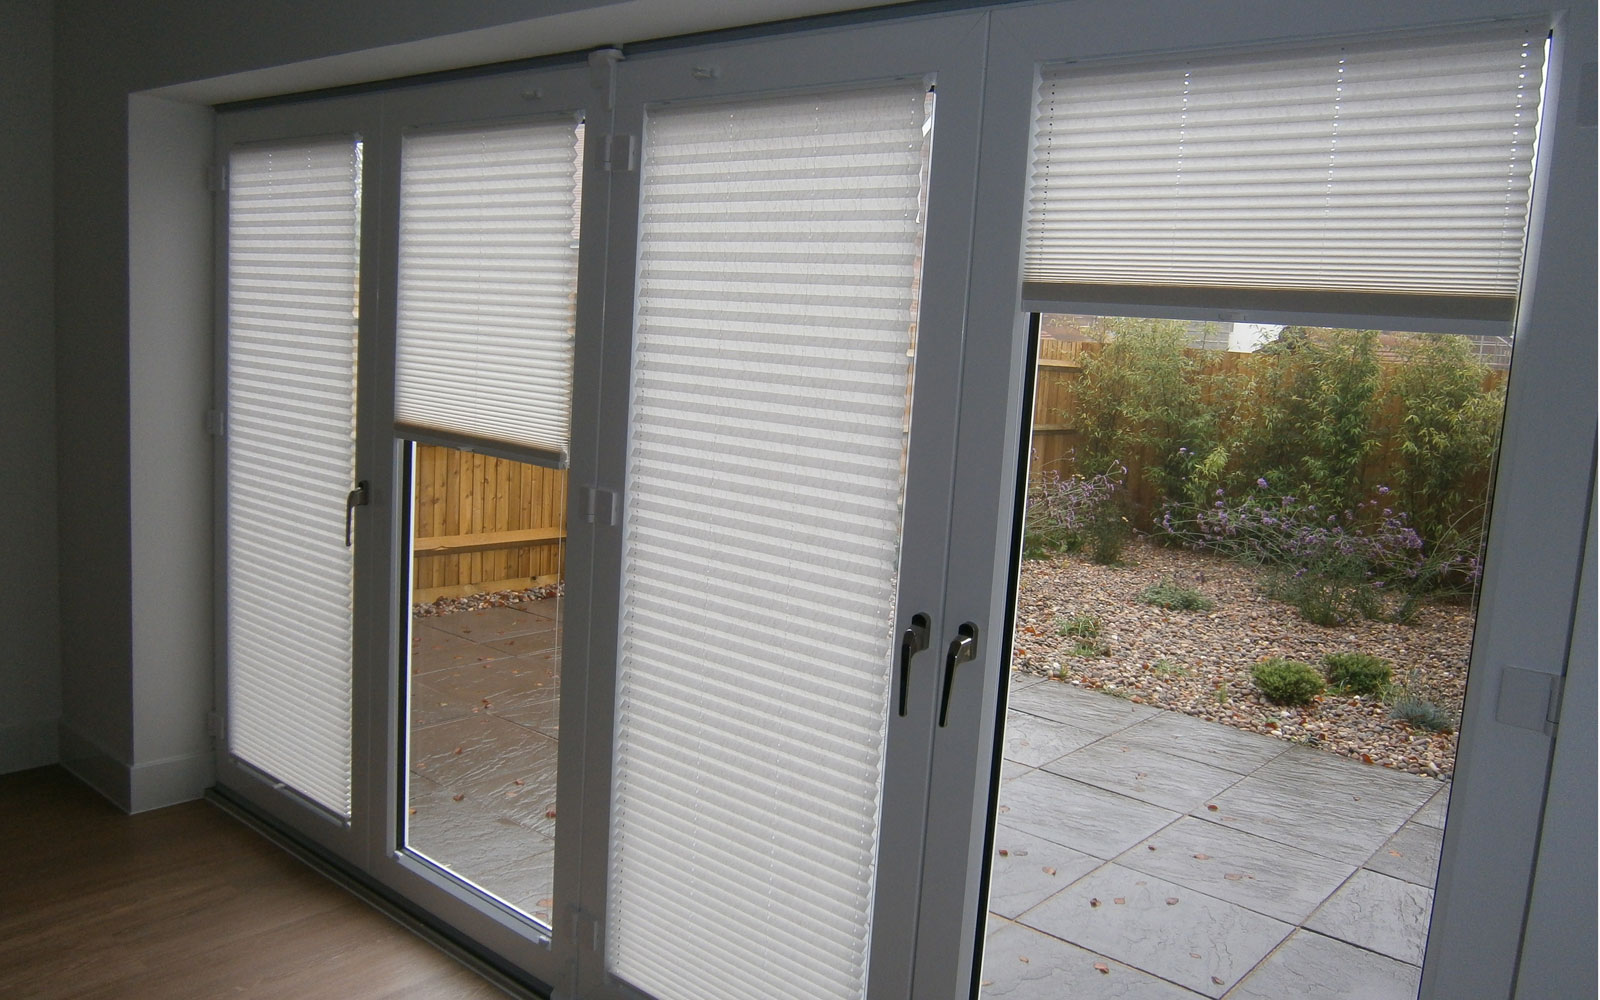 Patio door blinds with sliding door with blinds with window coverings for sliding doors